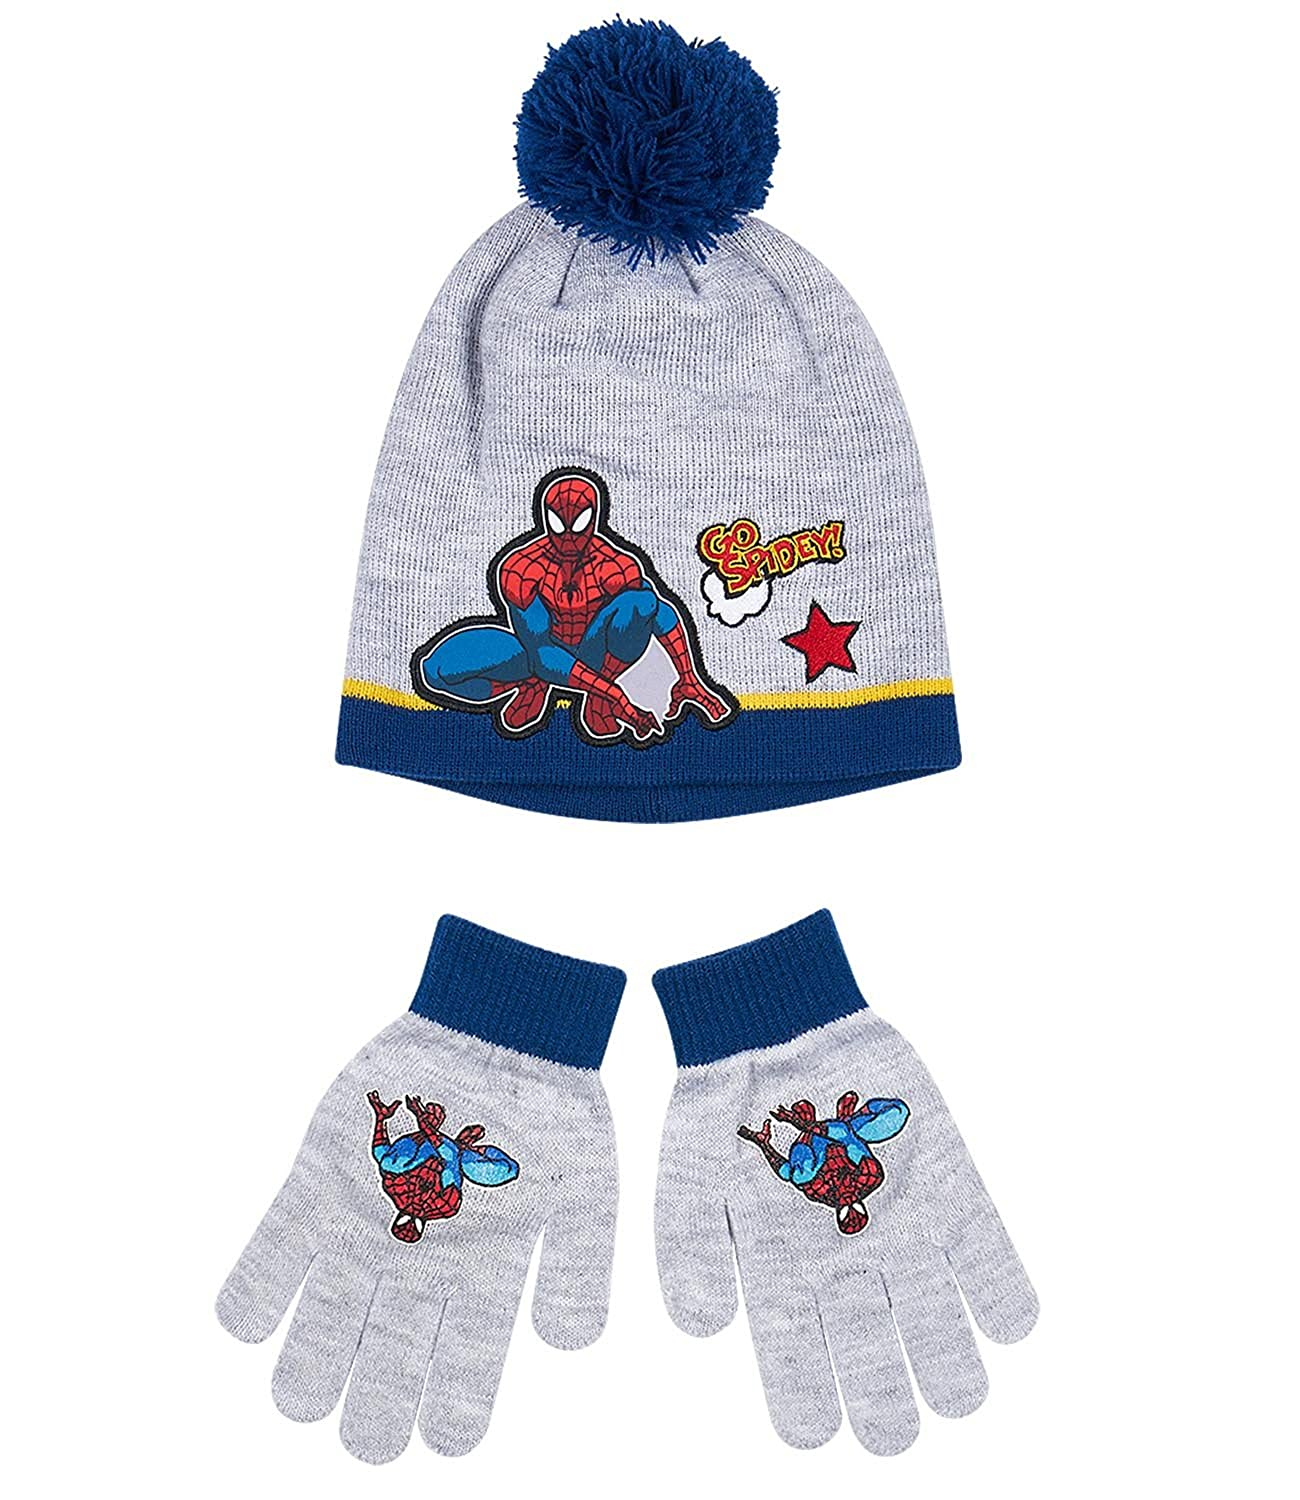 Spider-Man Boys 2 pieces set: Hat and Gloves - grey